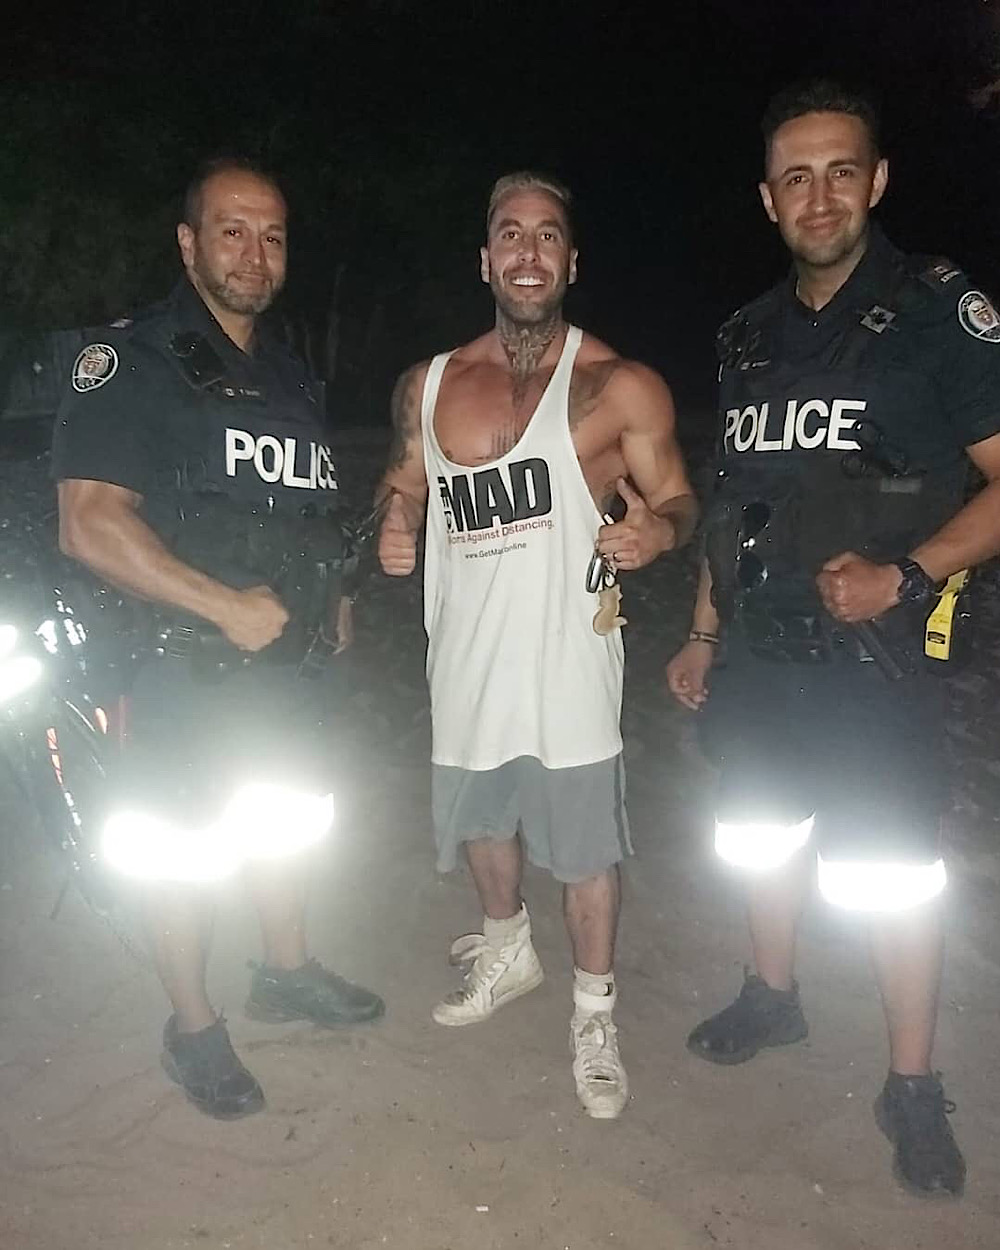 Toronto police is investigating this photo of two officers with Chris Sky (Instagram - @meet.the.skys)